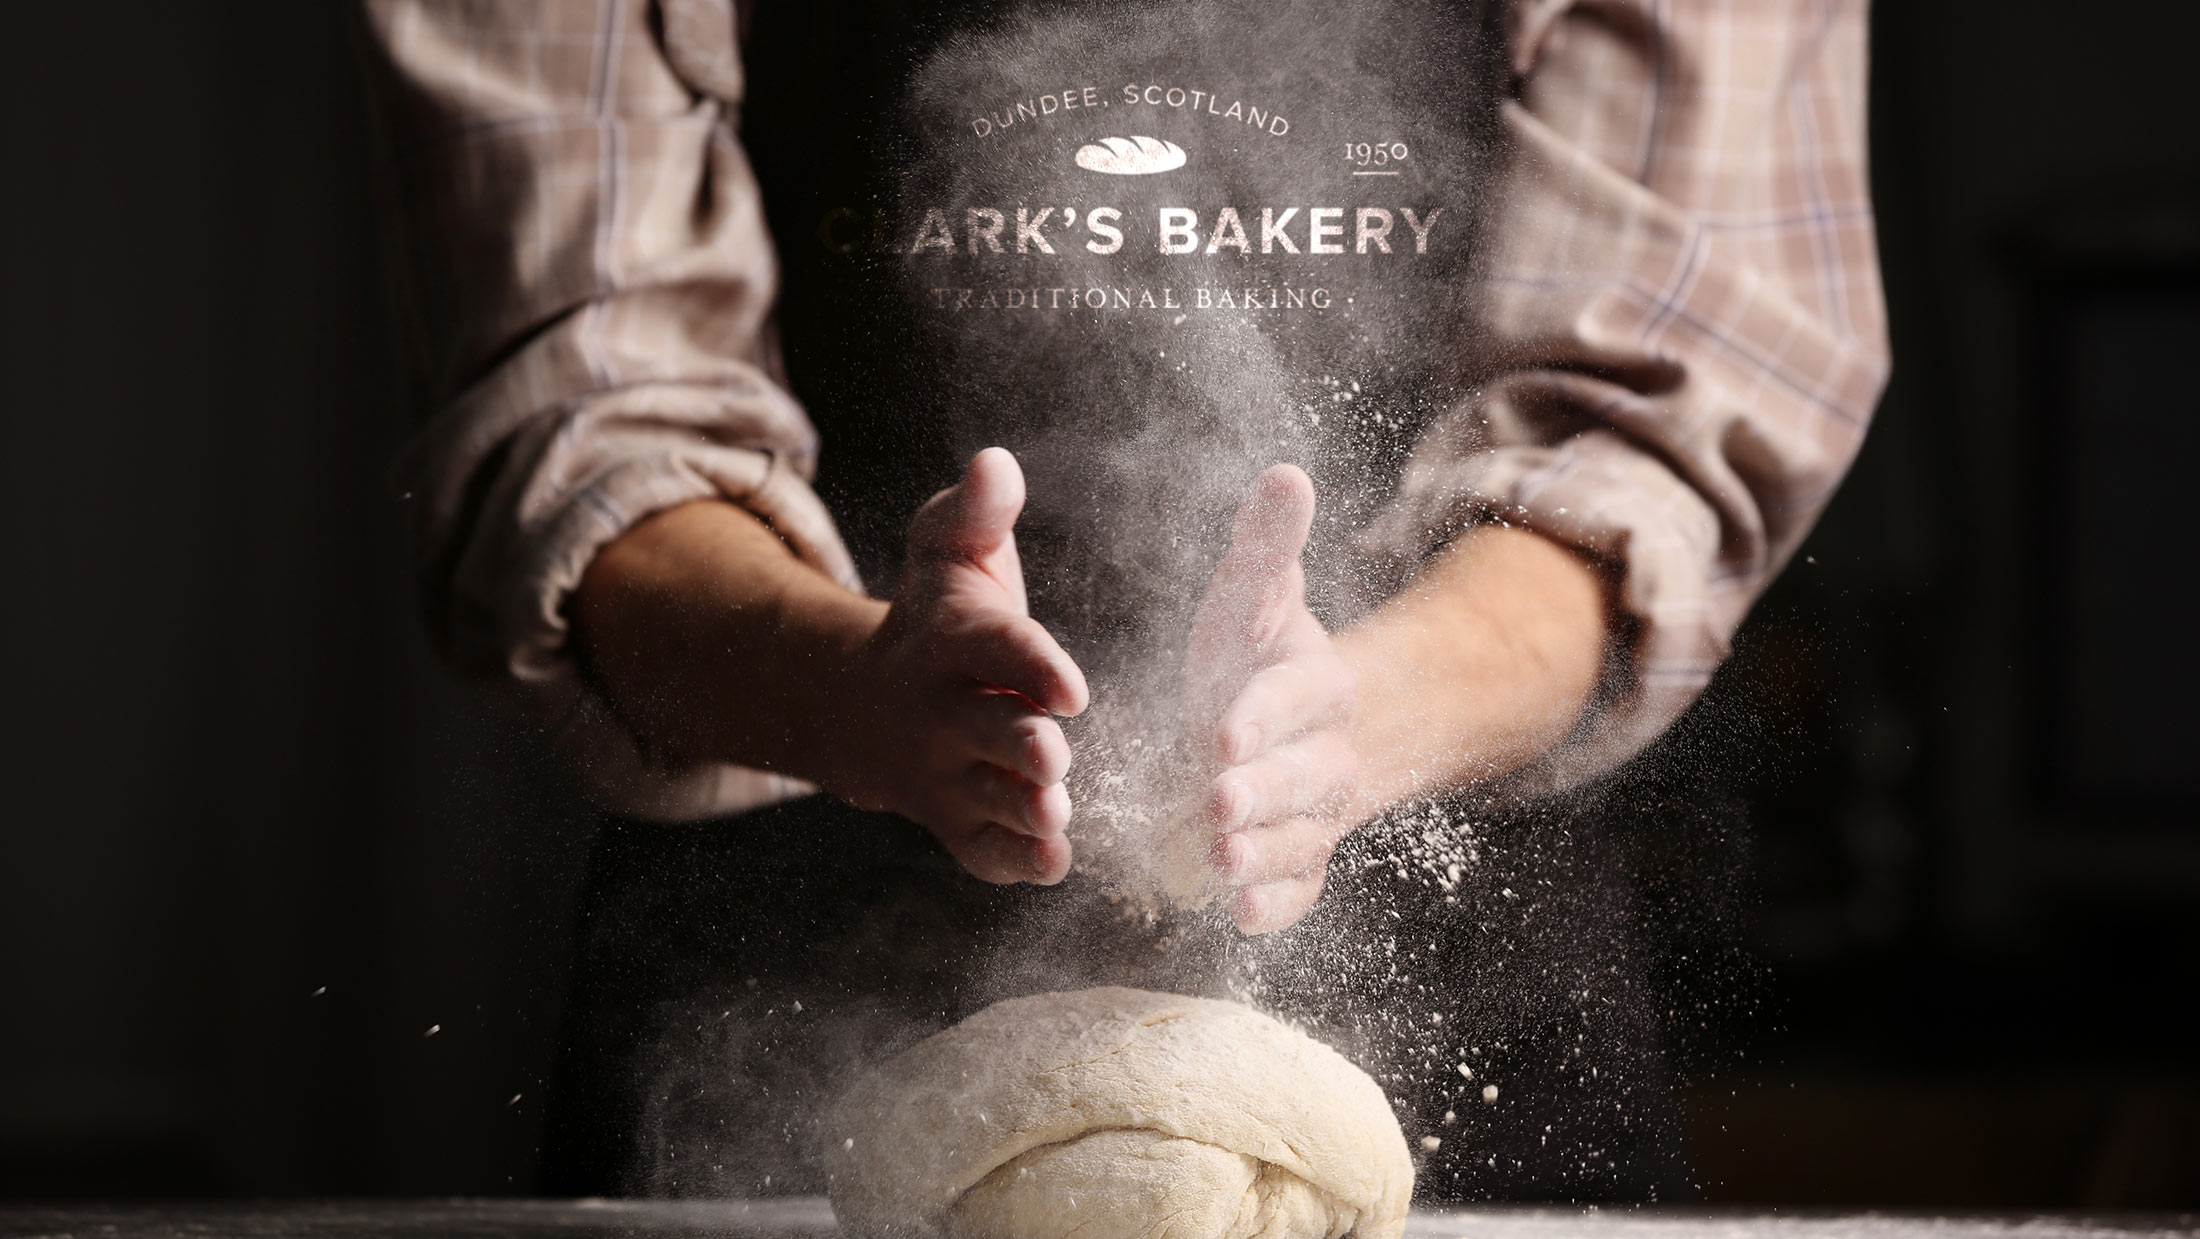 Baker kneading bread dough wearing a black apron with the Clark's Bakery logo on the front